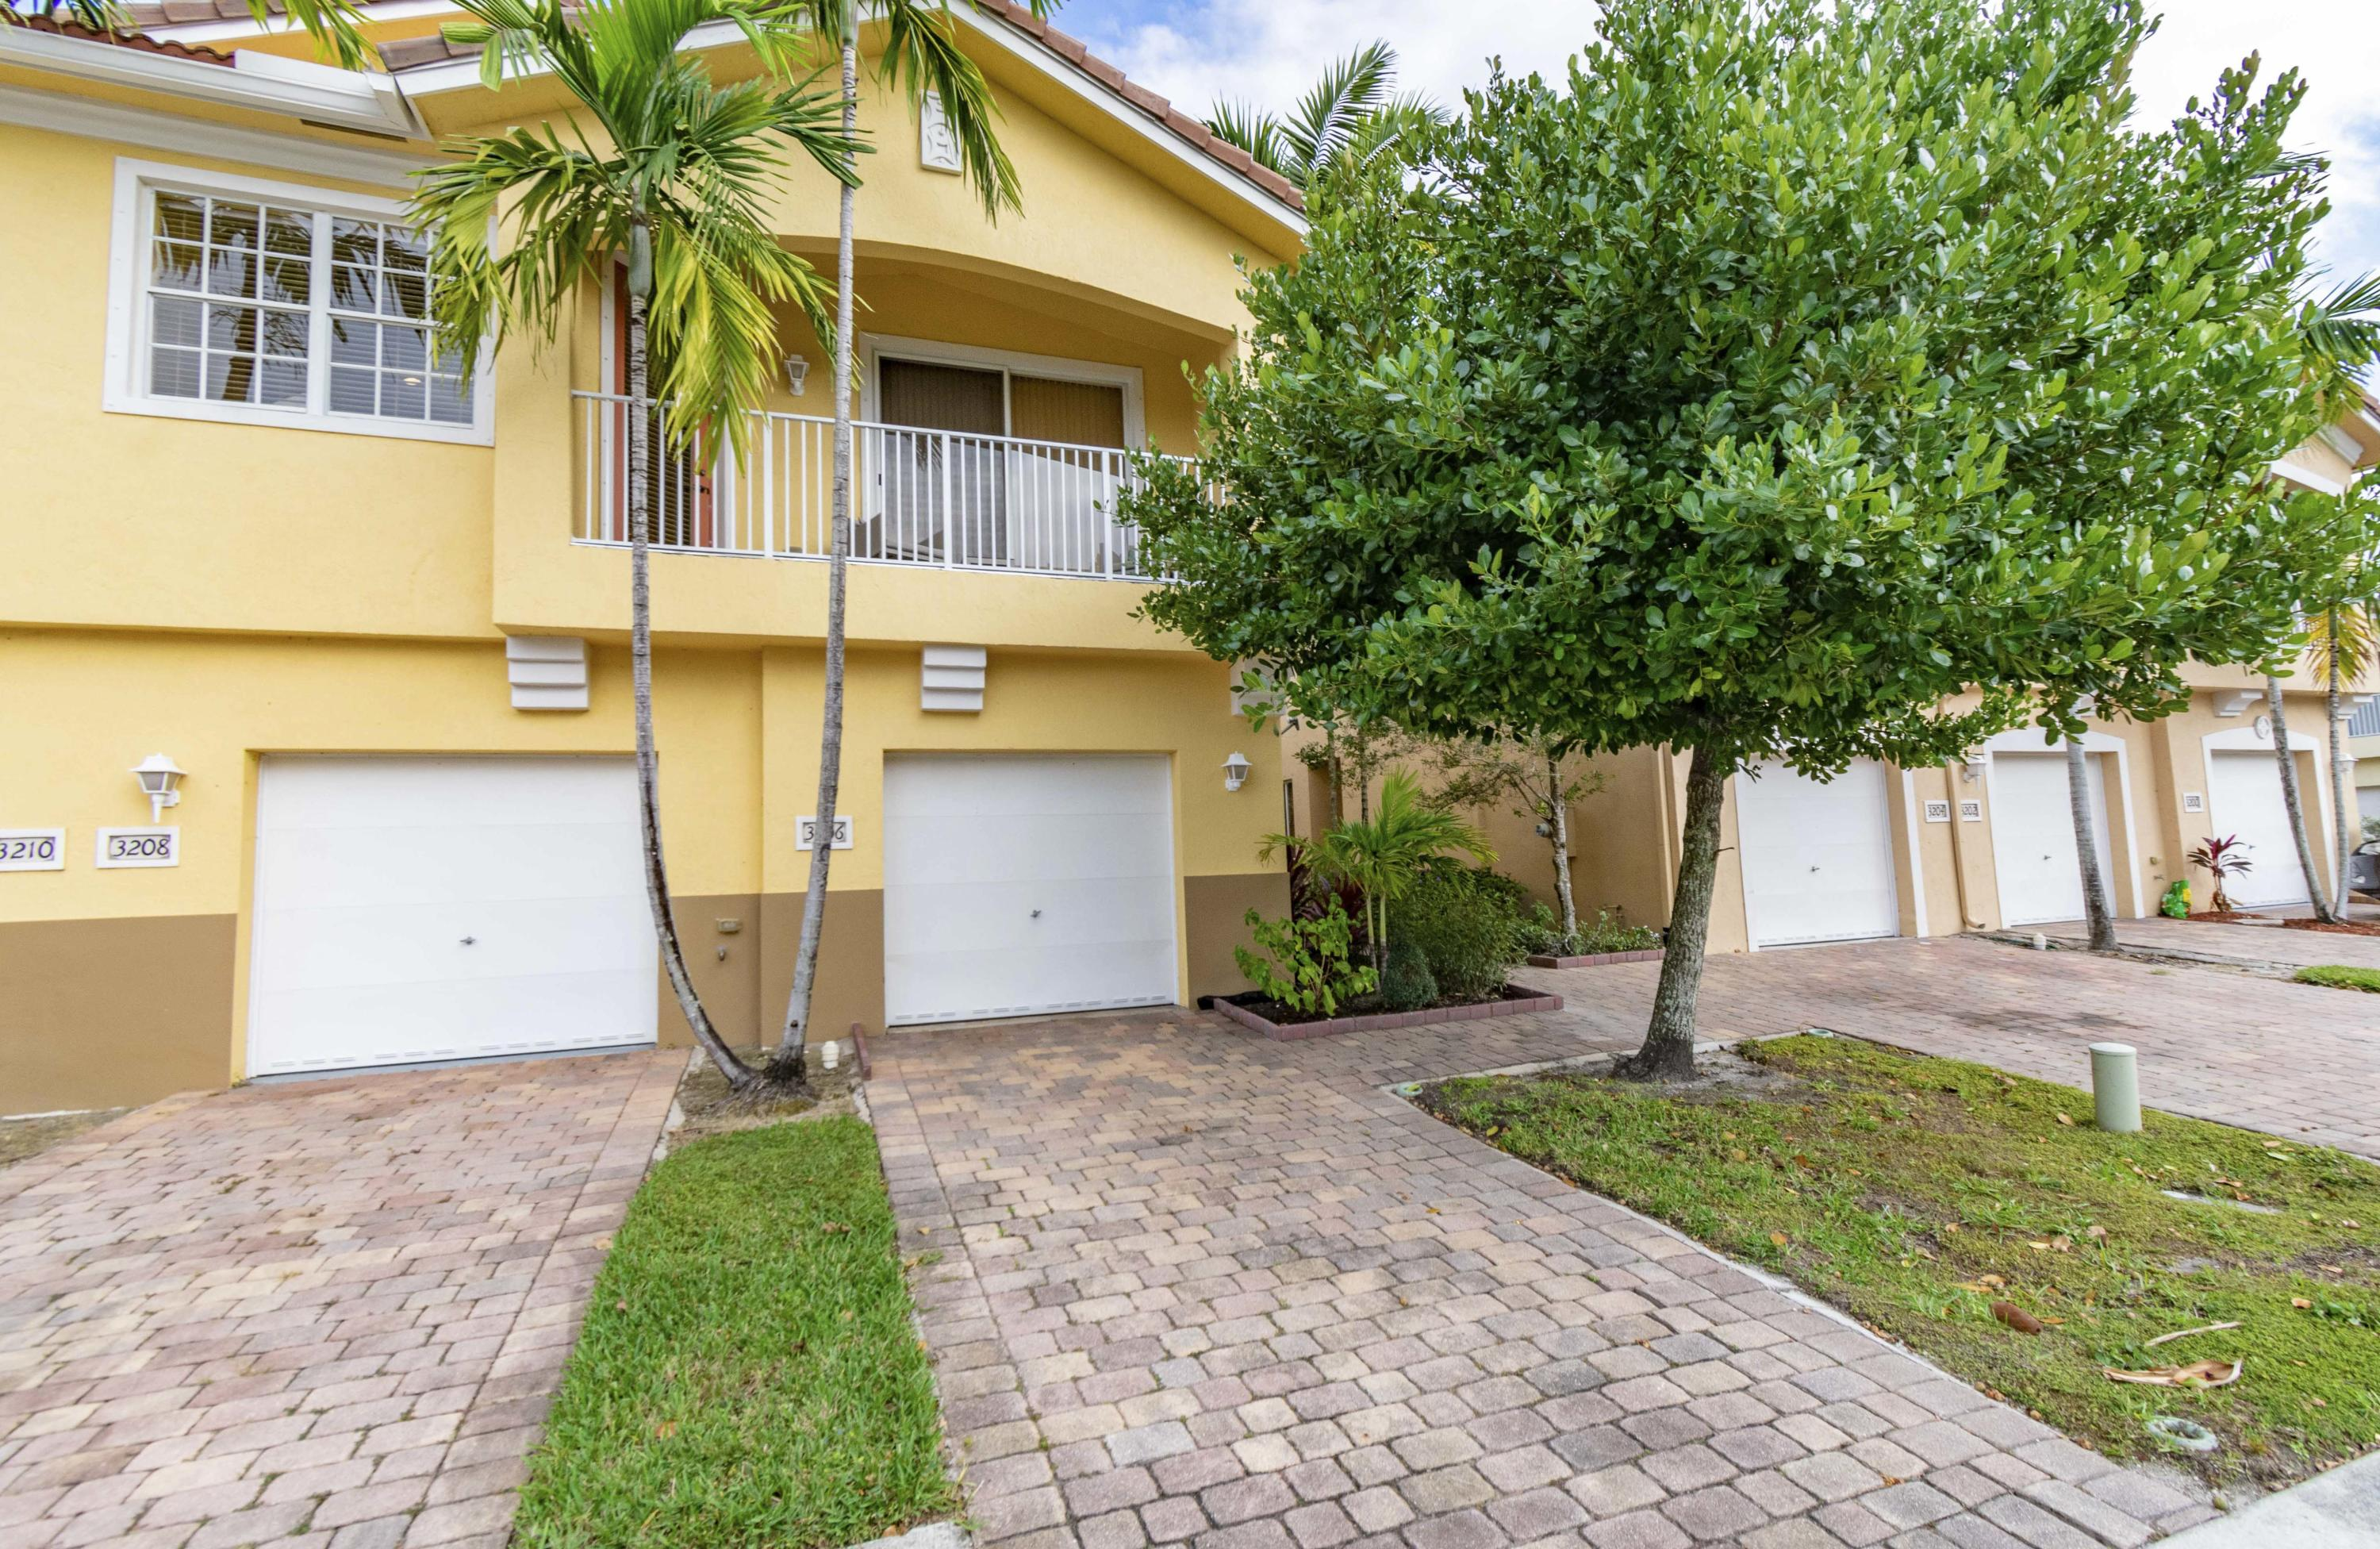 3206 Mirella Drive, Riviera Beach, Florida 33404, 2 Bedrooms Bedrooms, ,2 BathroomsBathrooms,Condo/Coop,For Sale,Mirella,12,RX-10496351